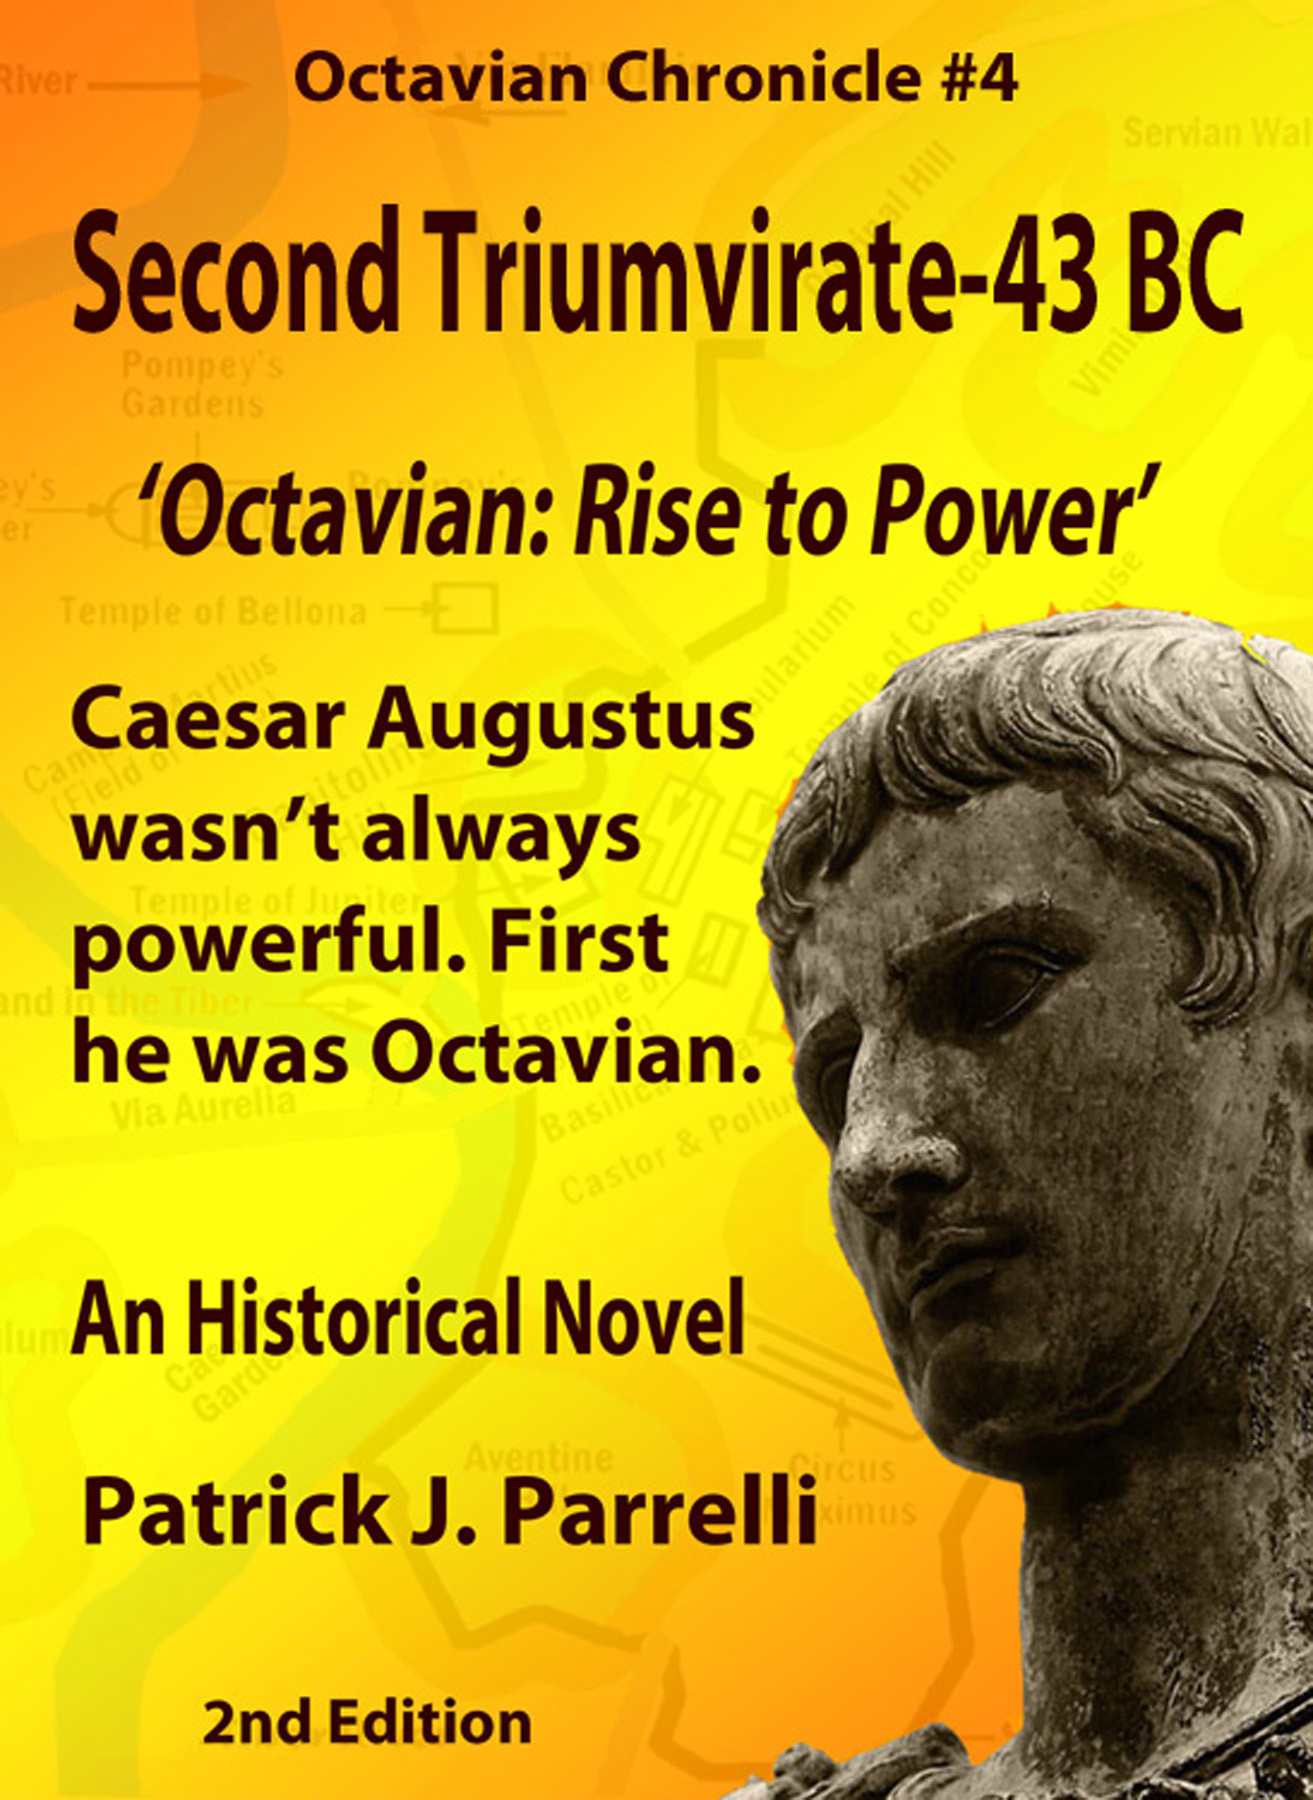 #4 Second Triumvirate - 43 BC